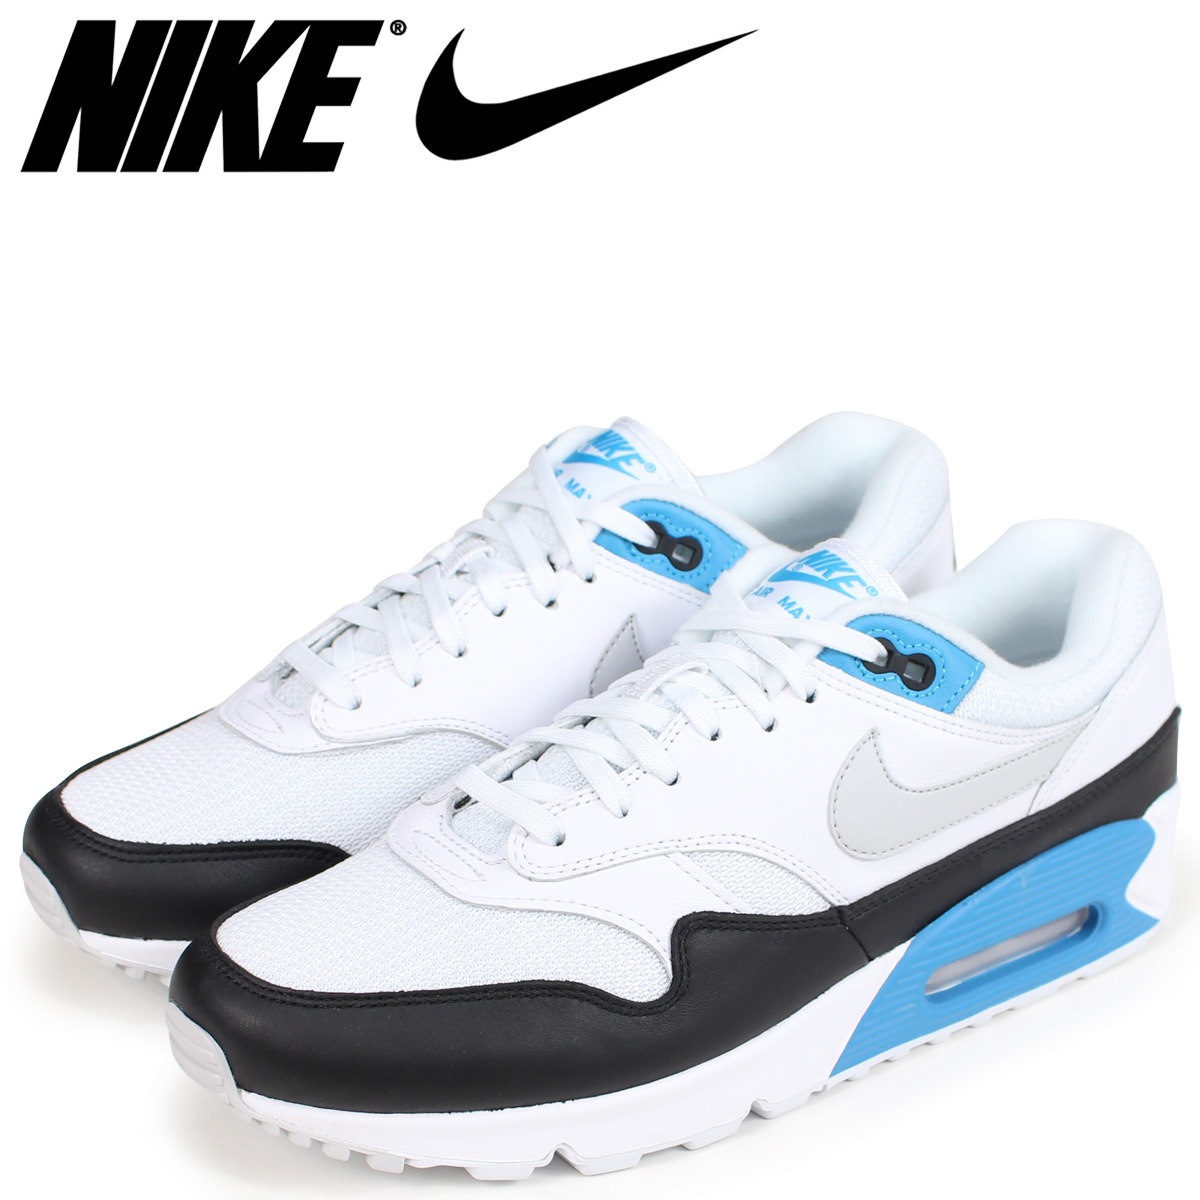 f7c765aba3 Sugar Online Shop: NIKE Kie Ney AMAX 90 1 sneakers men AIR MAX 90/1 ...